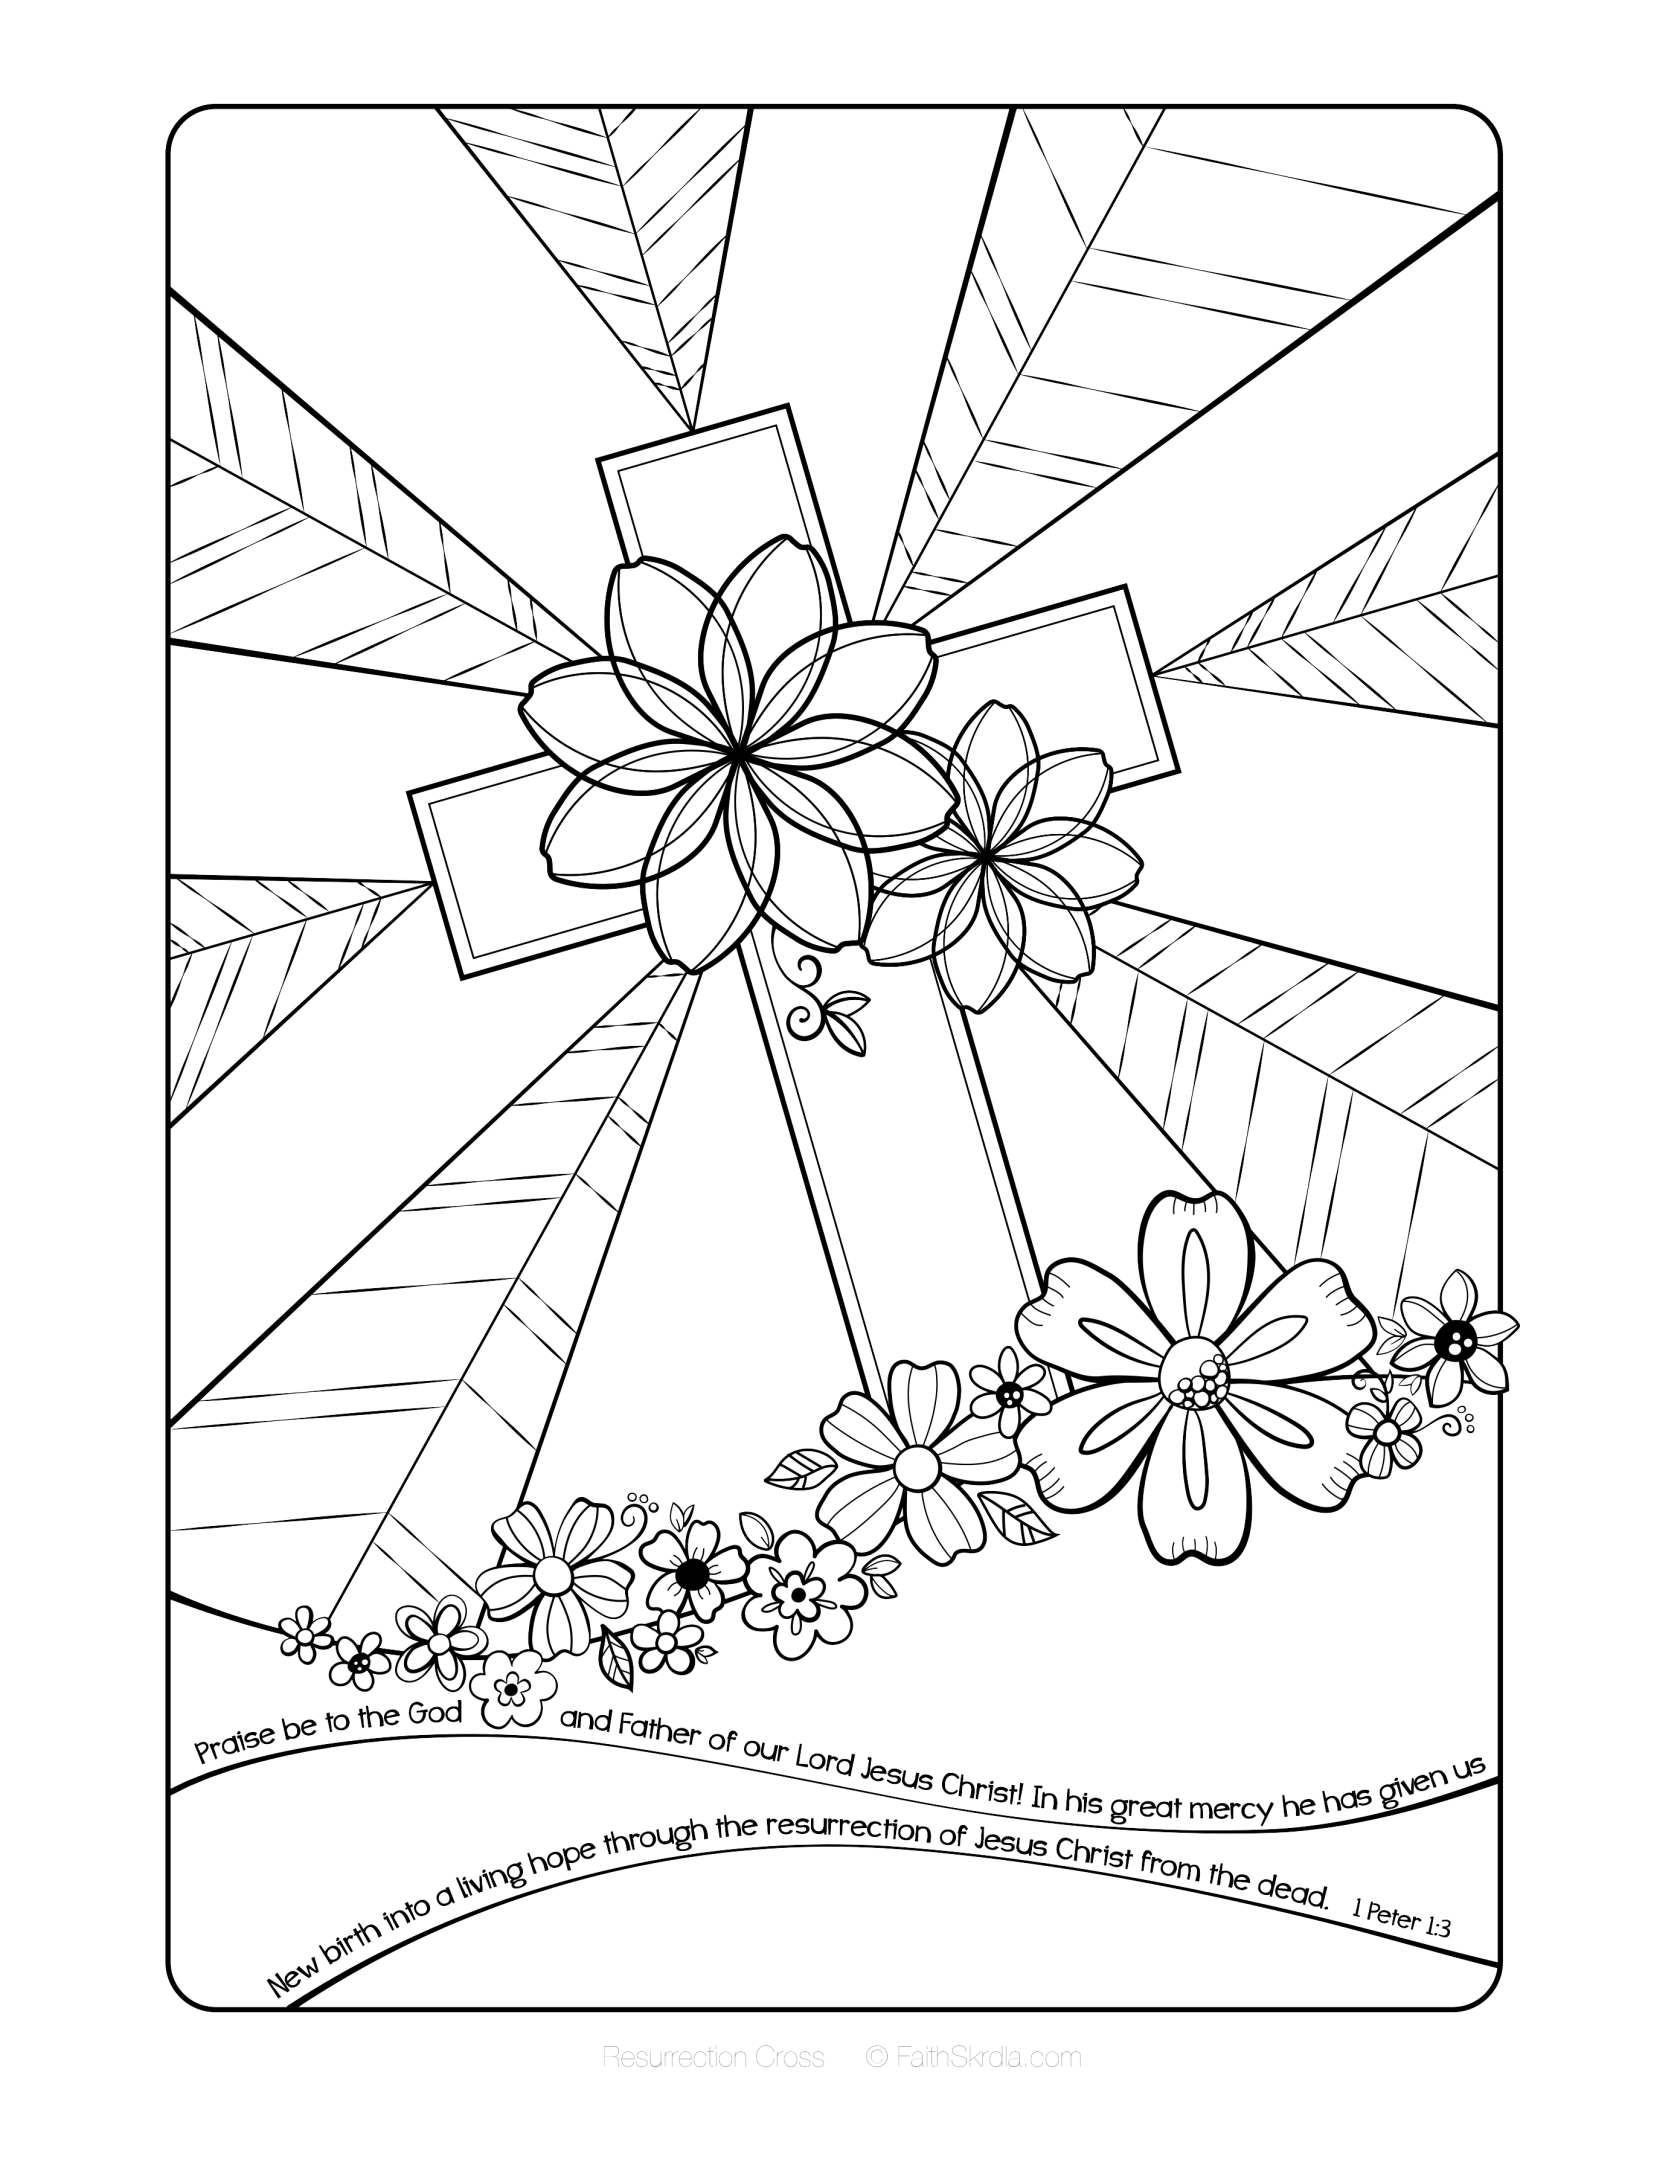 Free Easter Adult Coloring Page By Faith Skrdla Resurrection Cross 1 Peter 13 Bible Verse Christian For Adults And Grown Up Kids